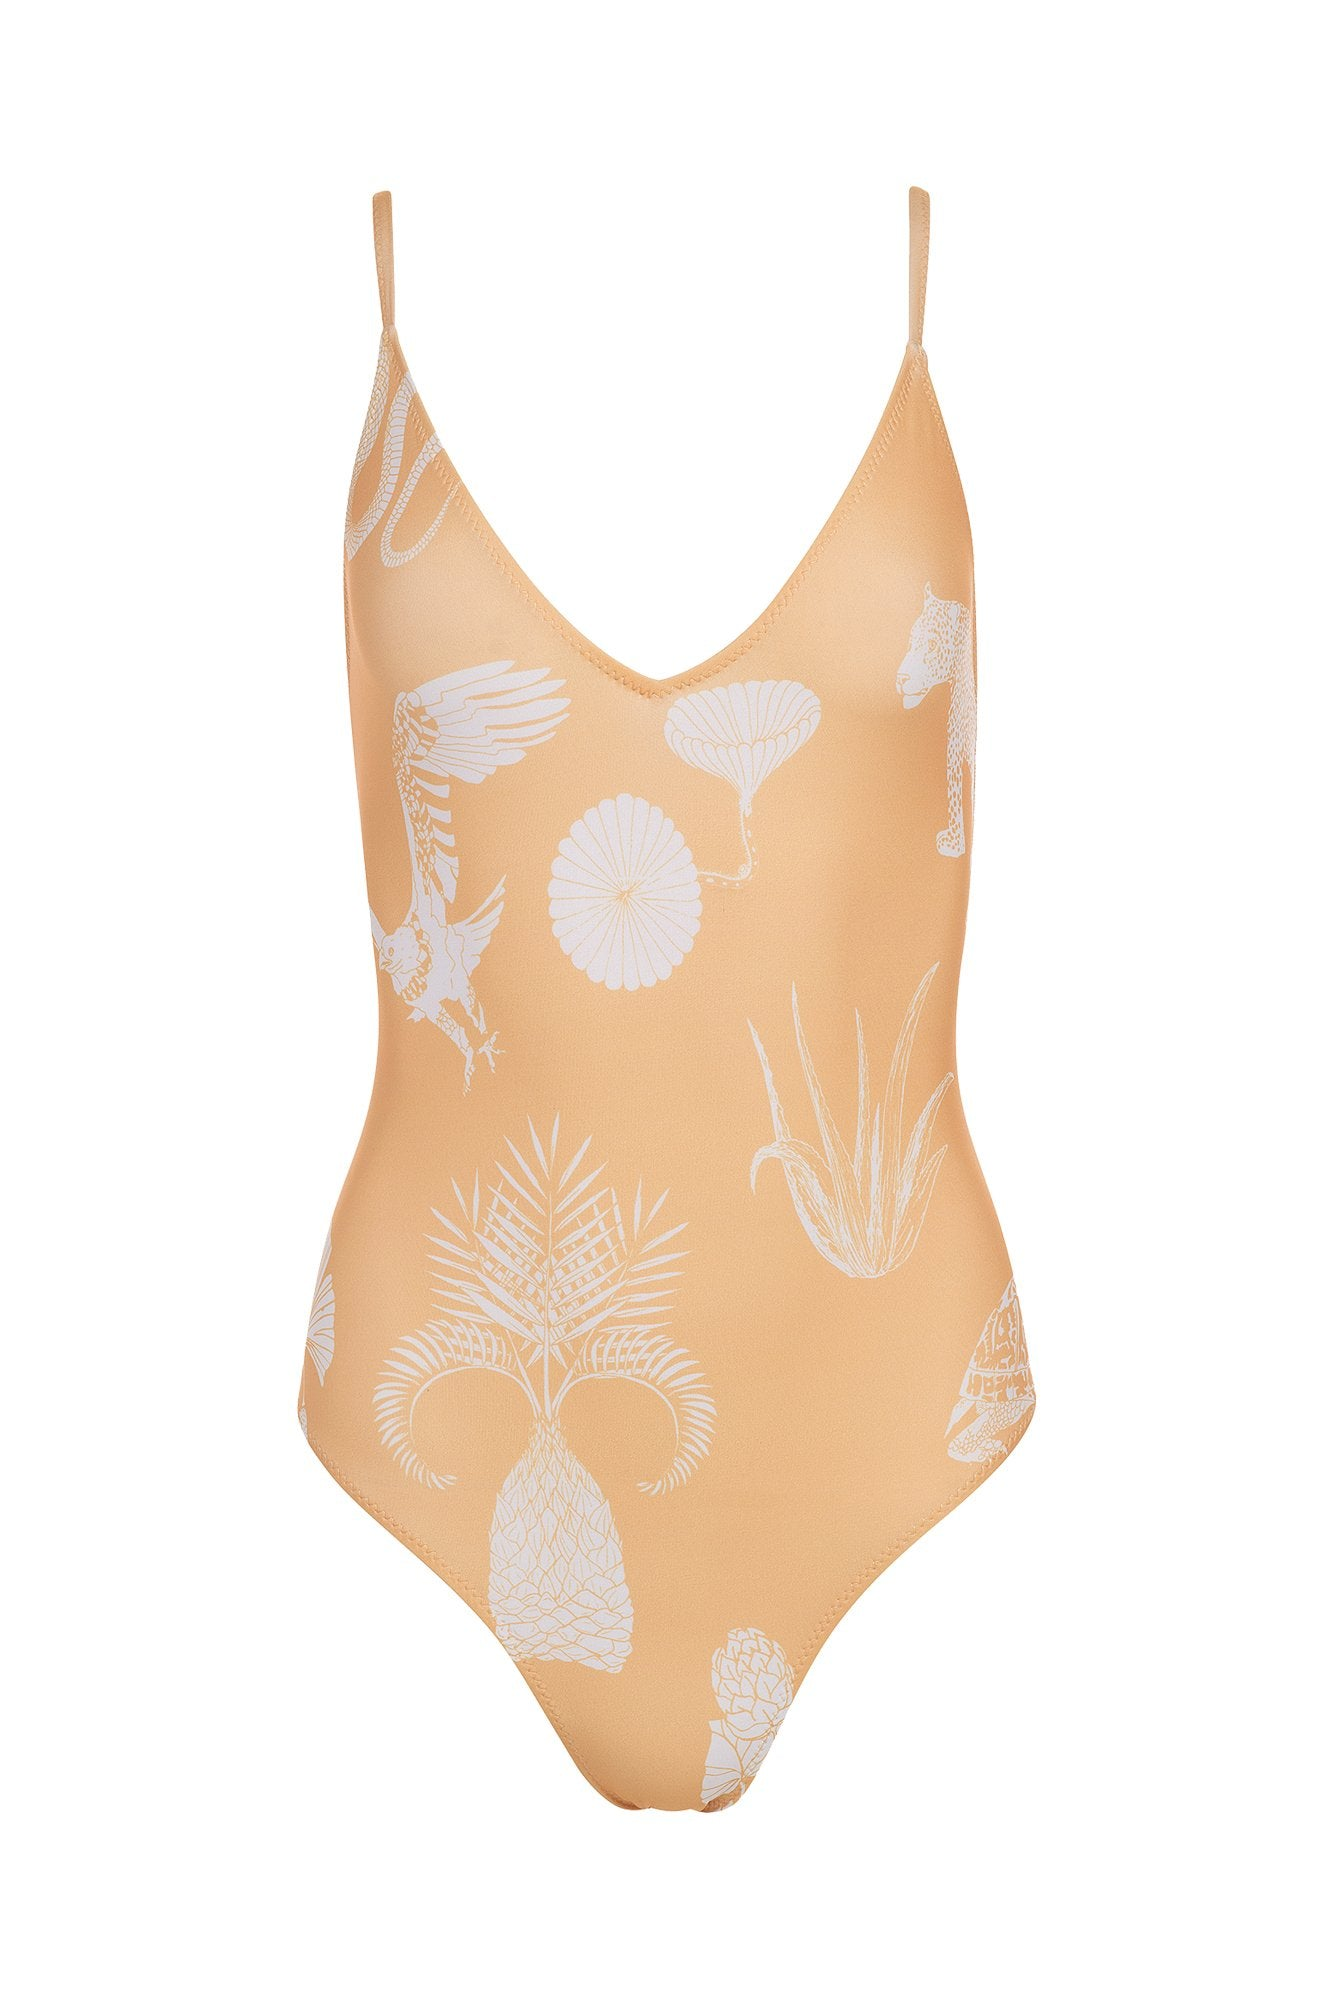 Carolina K Marieta One Piece Desert Animals Gold